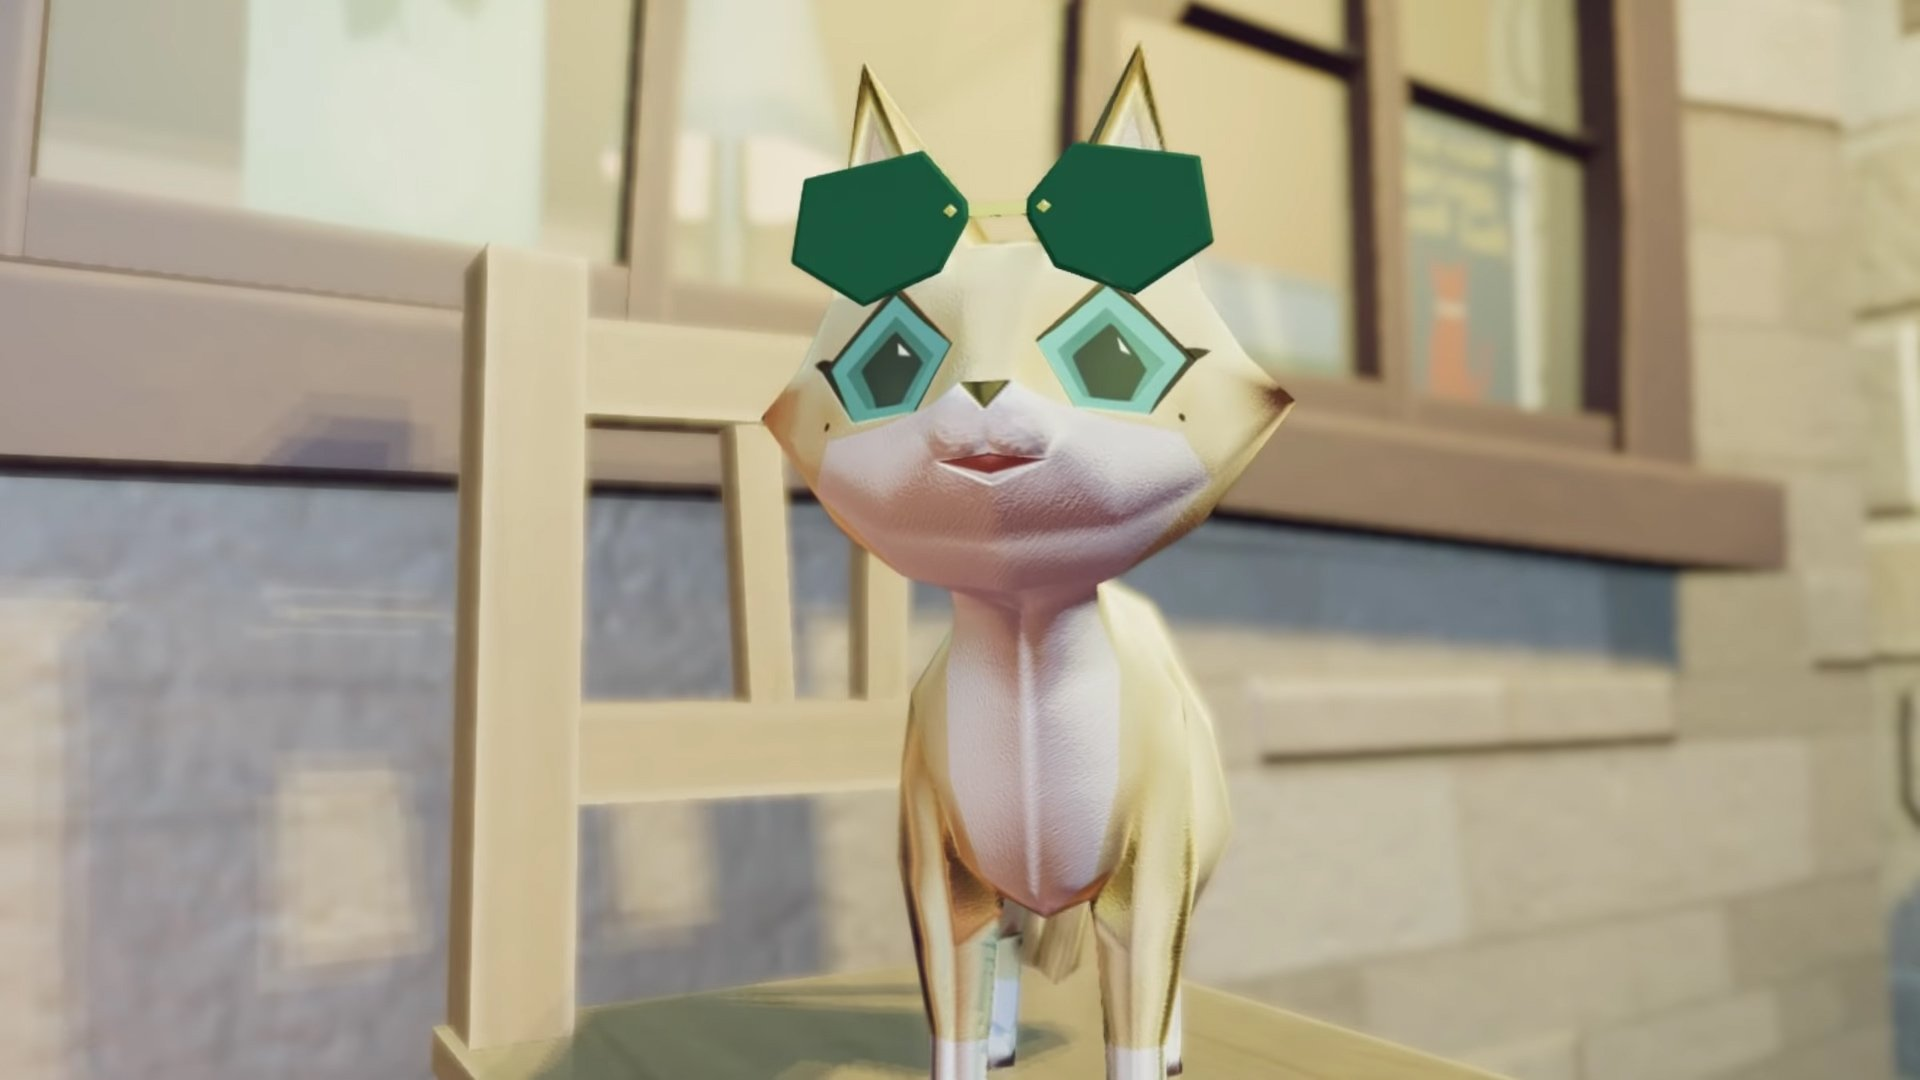 The Good Life's story trailer has that trademark Swery humor screenshot